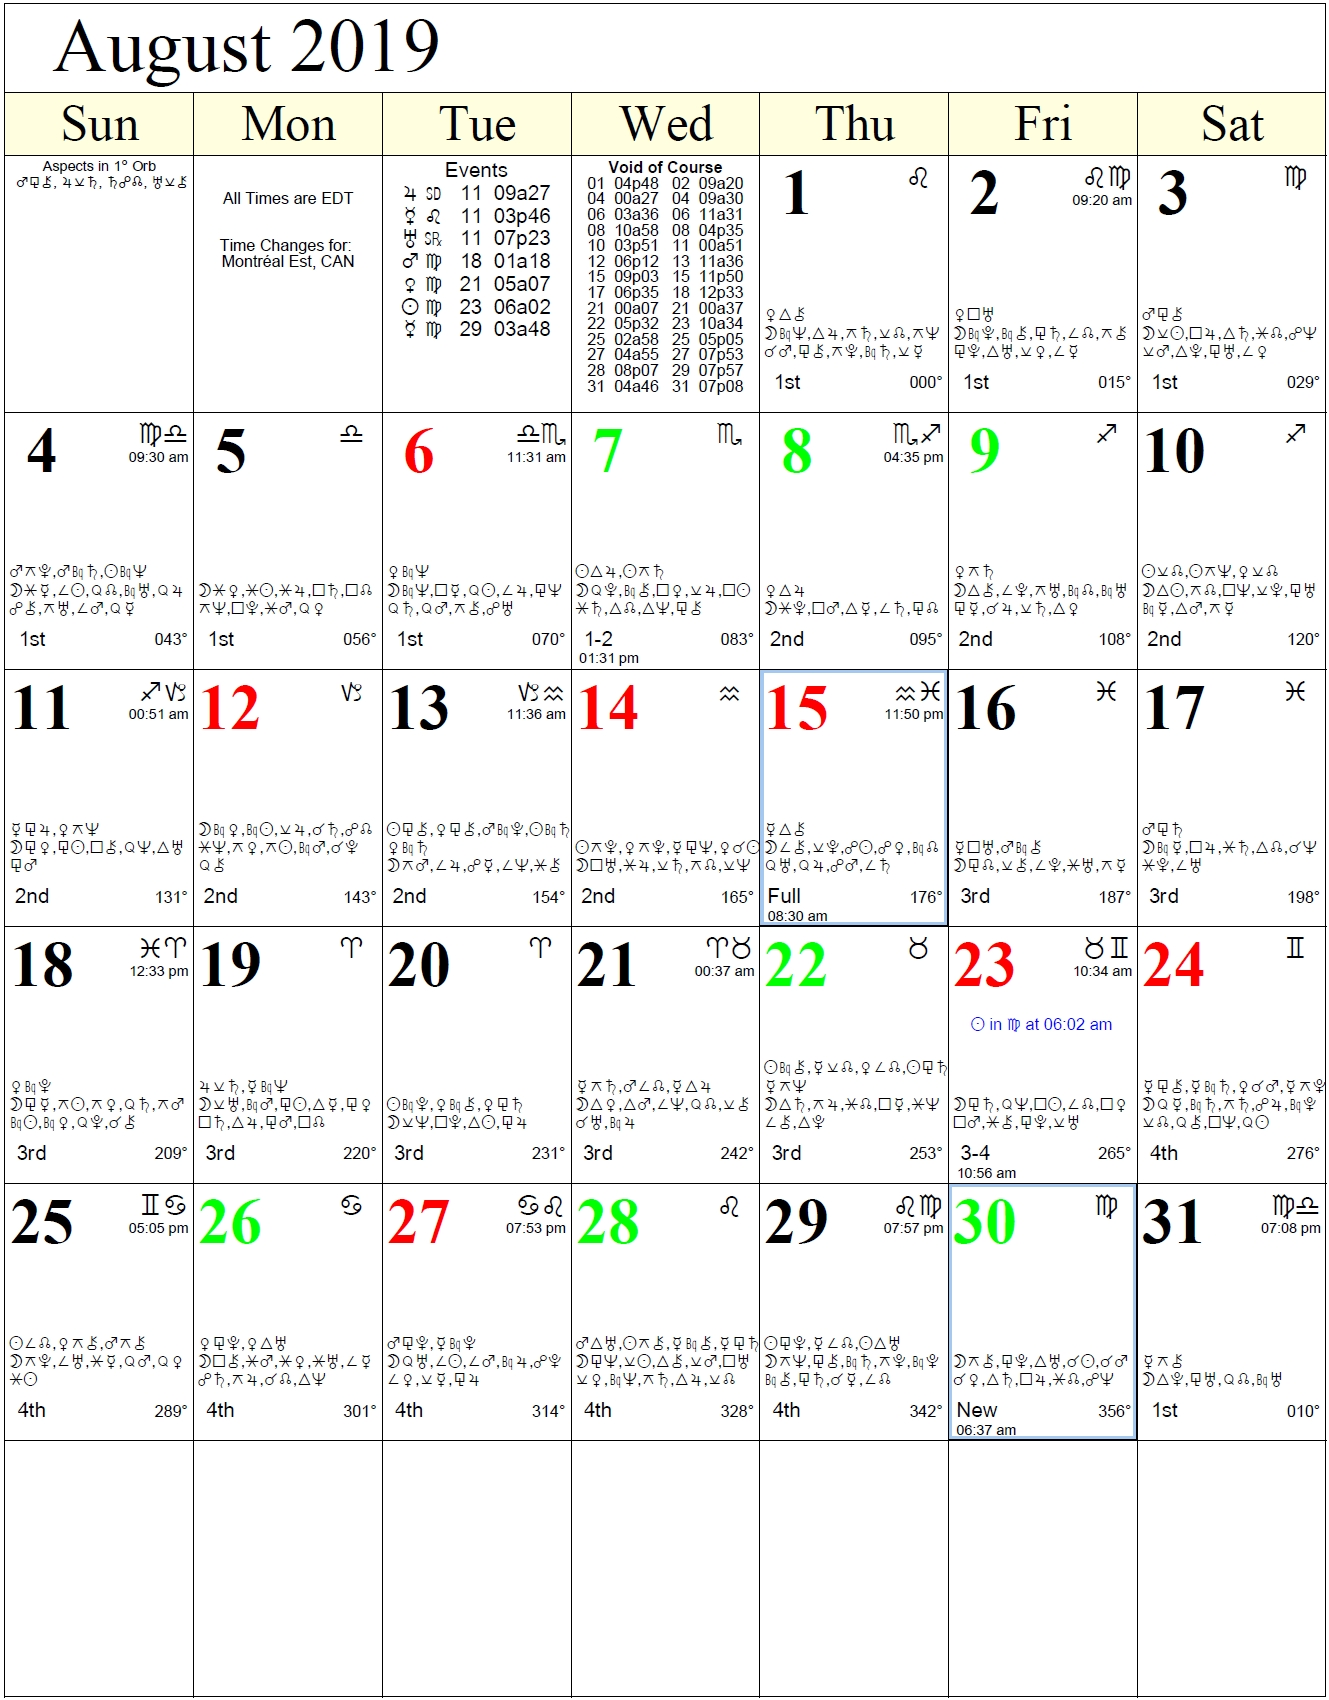 Monthly Astrology Calendars